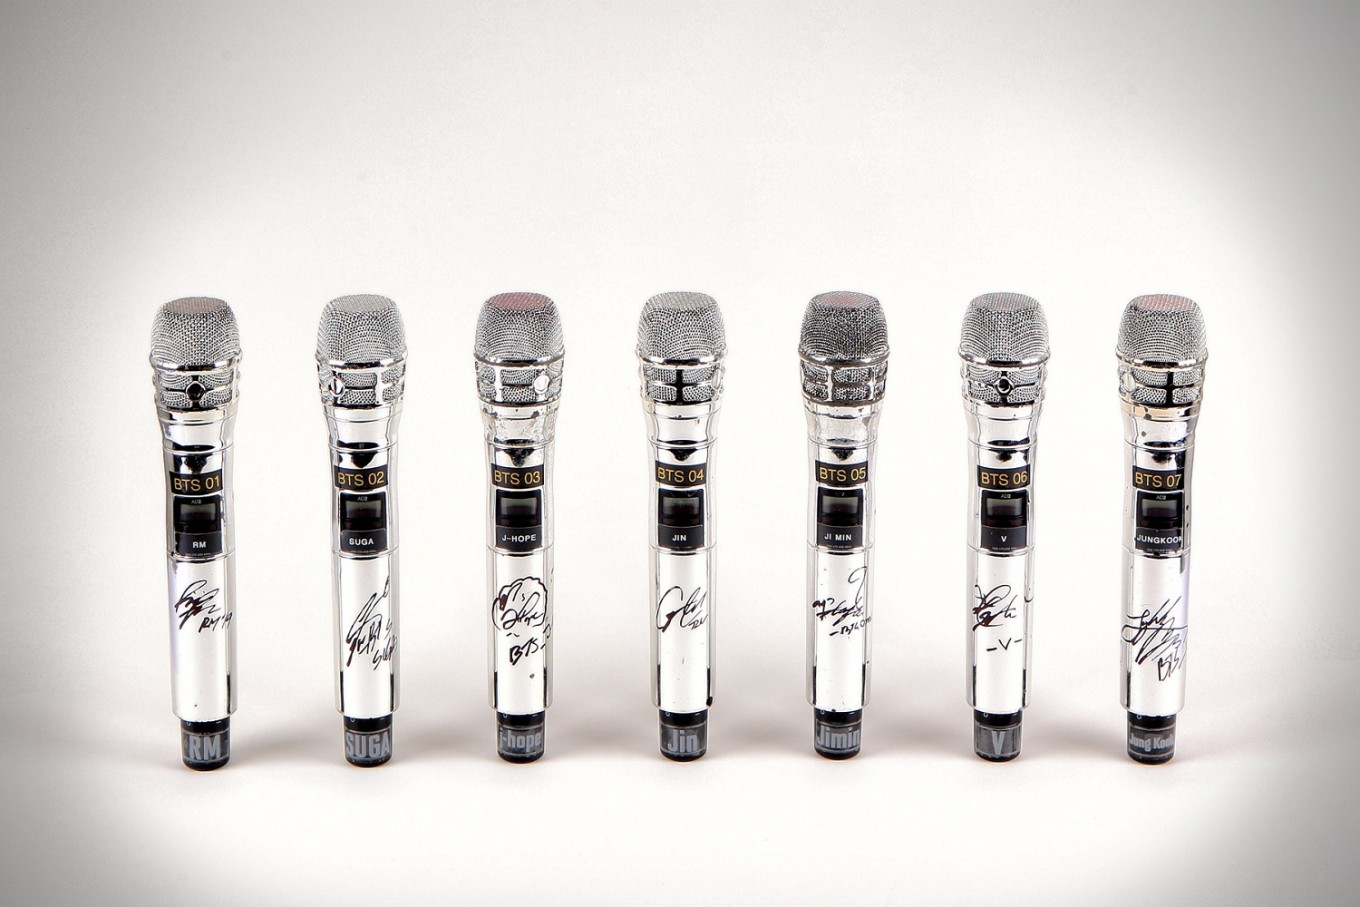 BTS signed microphones will go on auction to benefit MusiCares Charity